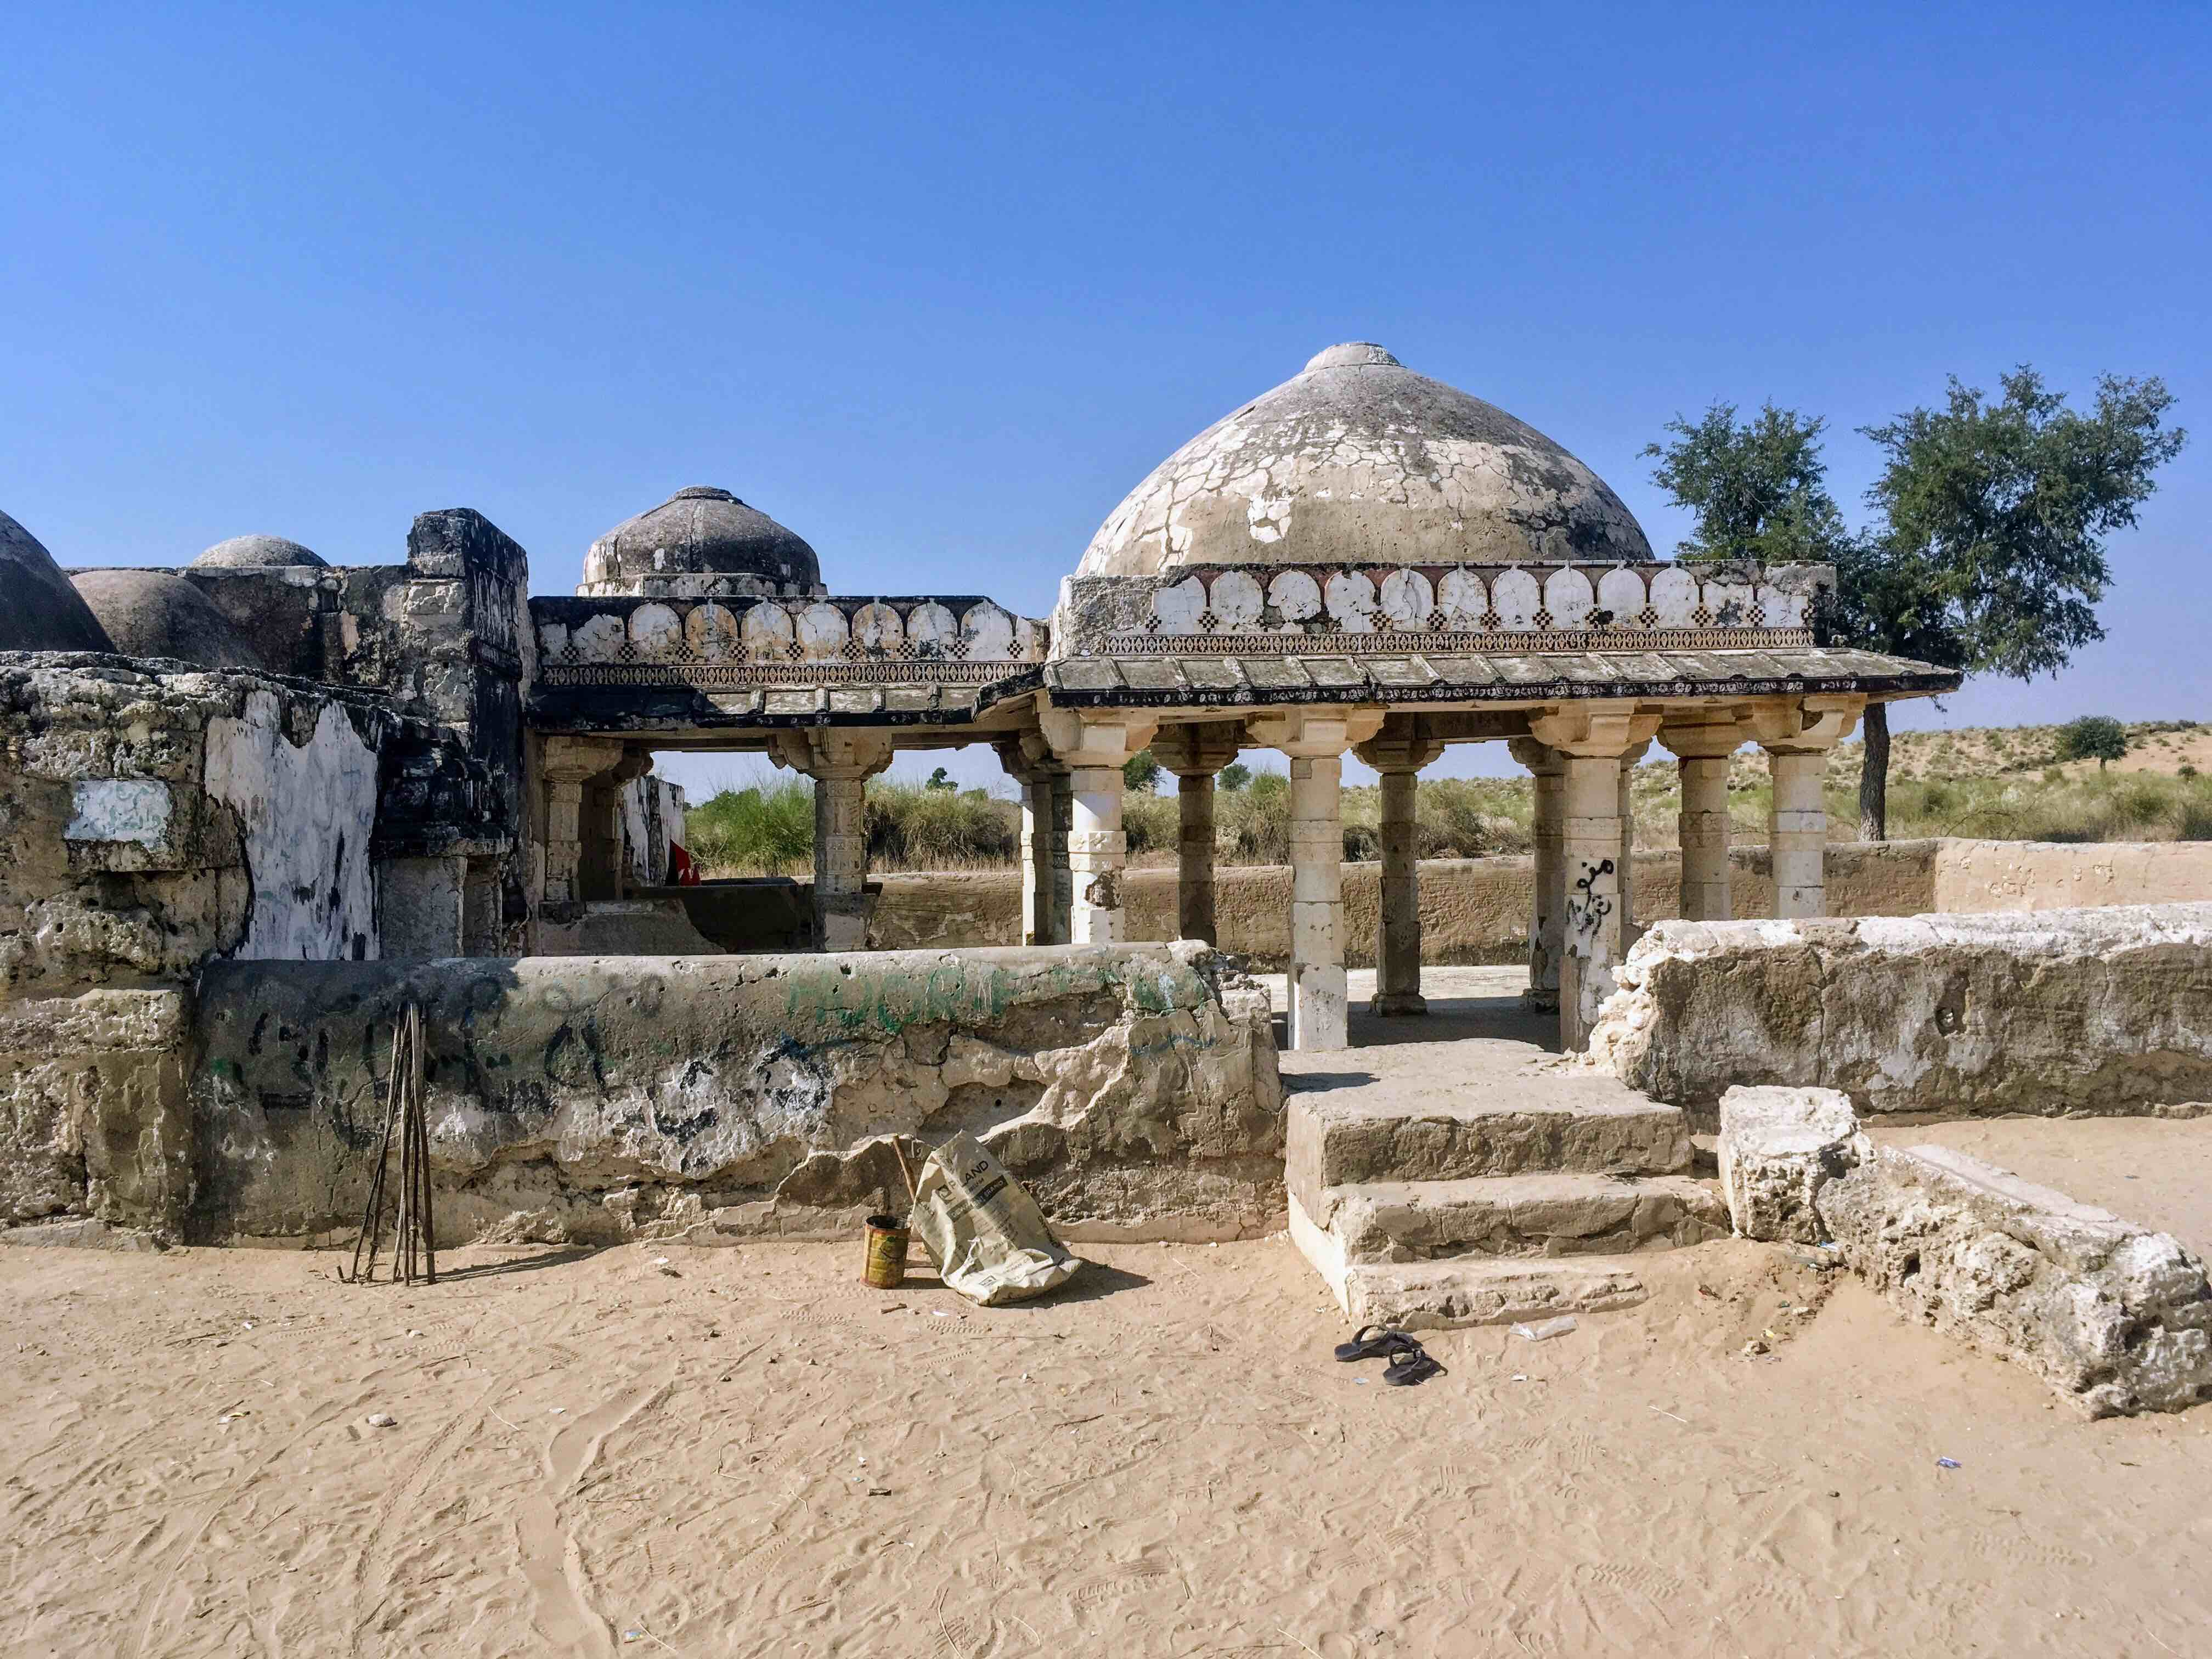 Gori Mandir. Built in 1375 C.E., this ancient Jain temple features rich Gujarati architecture. Jain pilgrims from across the world continue to frequent this place despite its dilapidated condition.